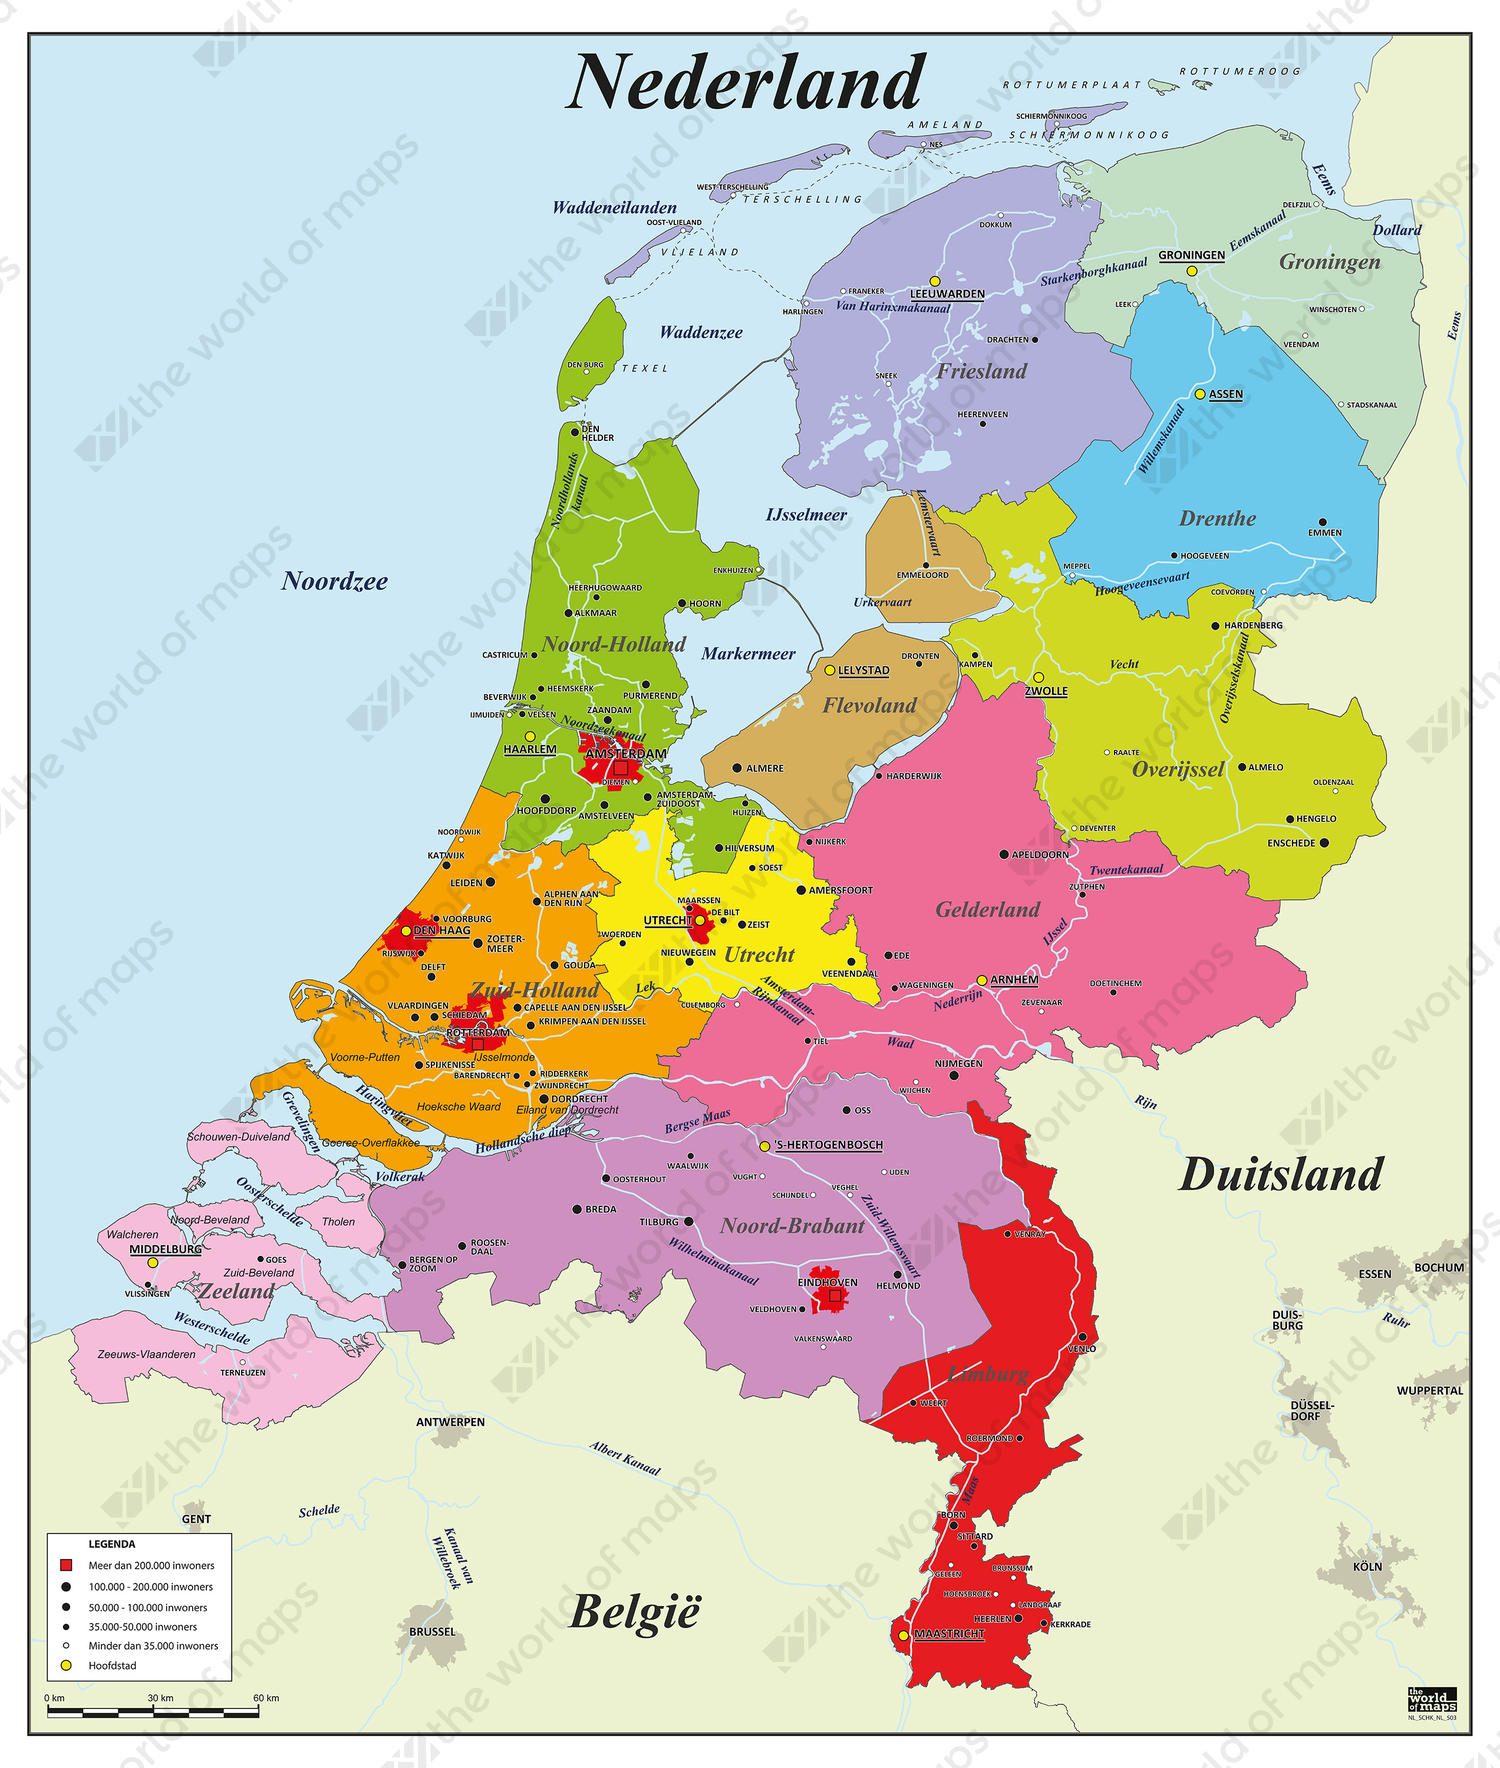 Digital Basic County Map Of The Netherlands 503 The World of Mapscom